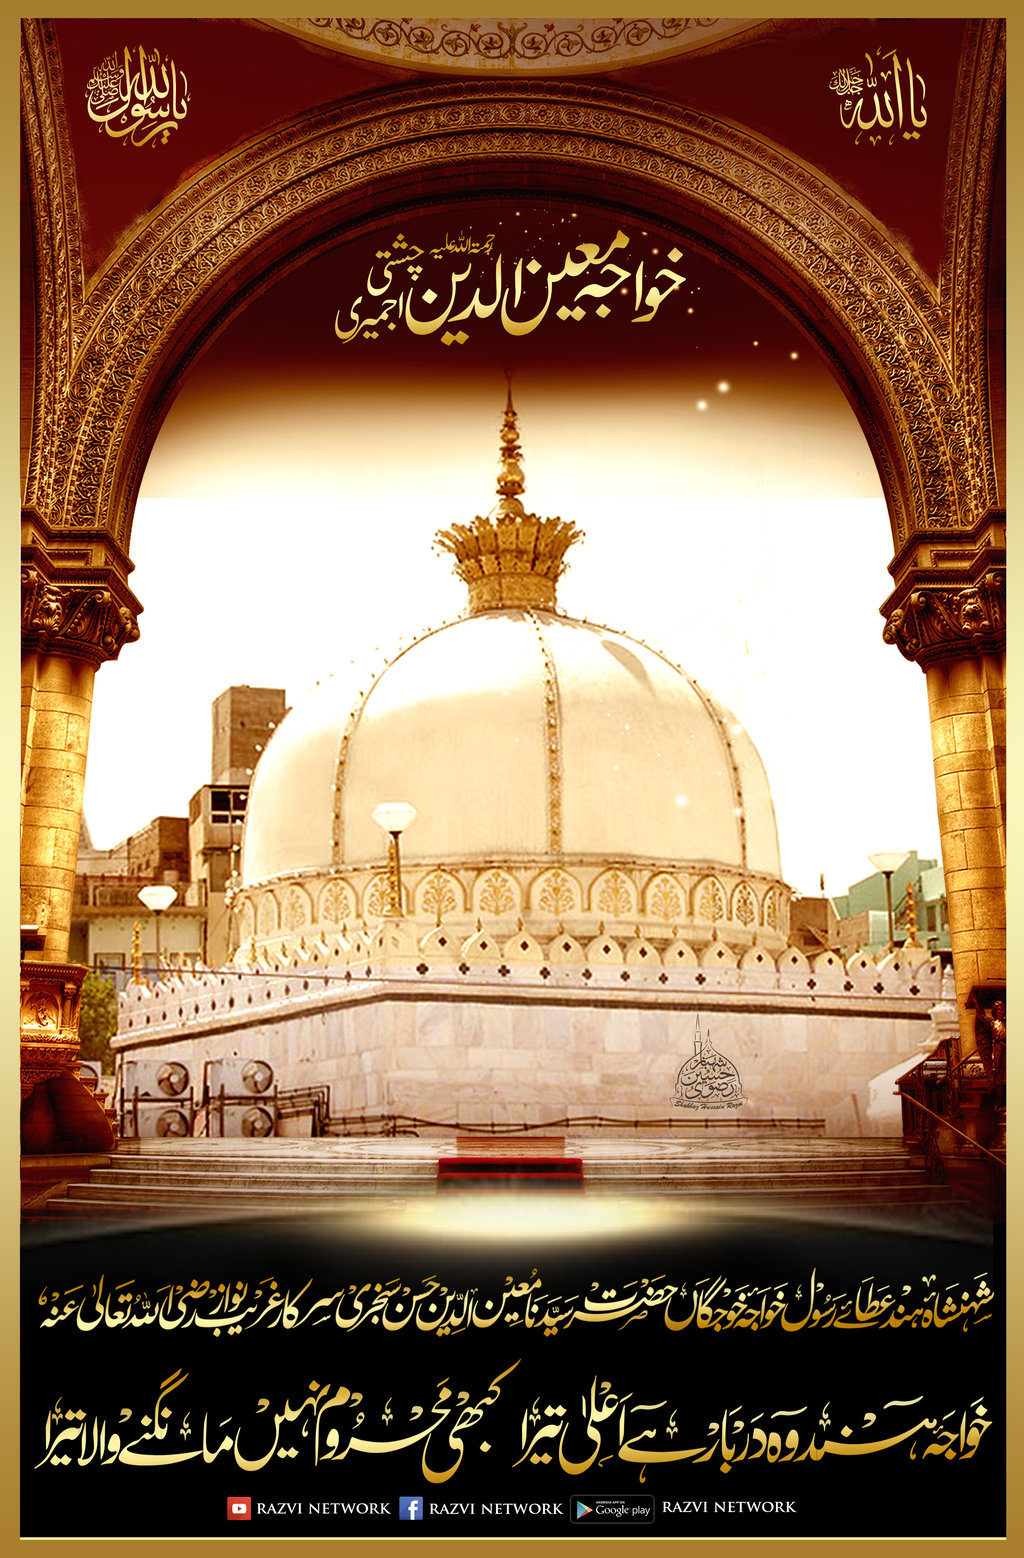 Download Garib Nawaz Wallpaper Free Download Gallery